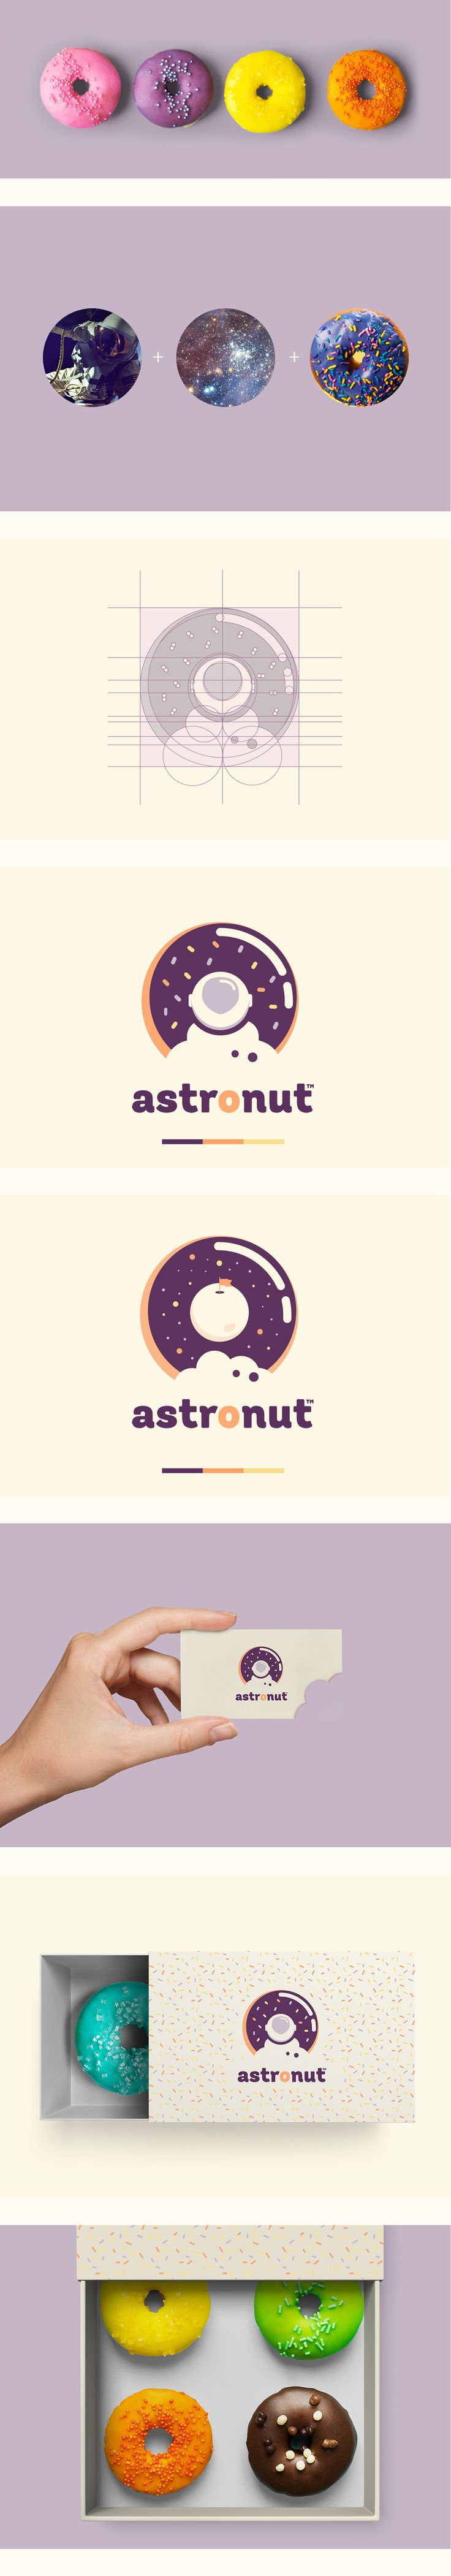 Astronut® Donuts from Outer space on Behance